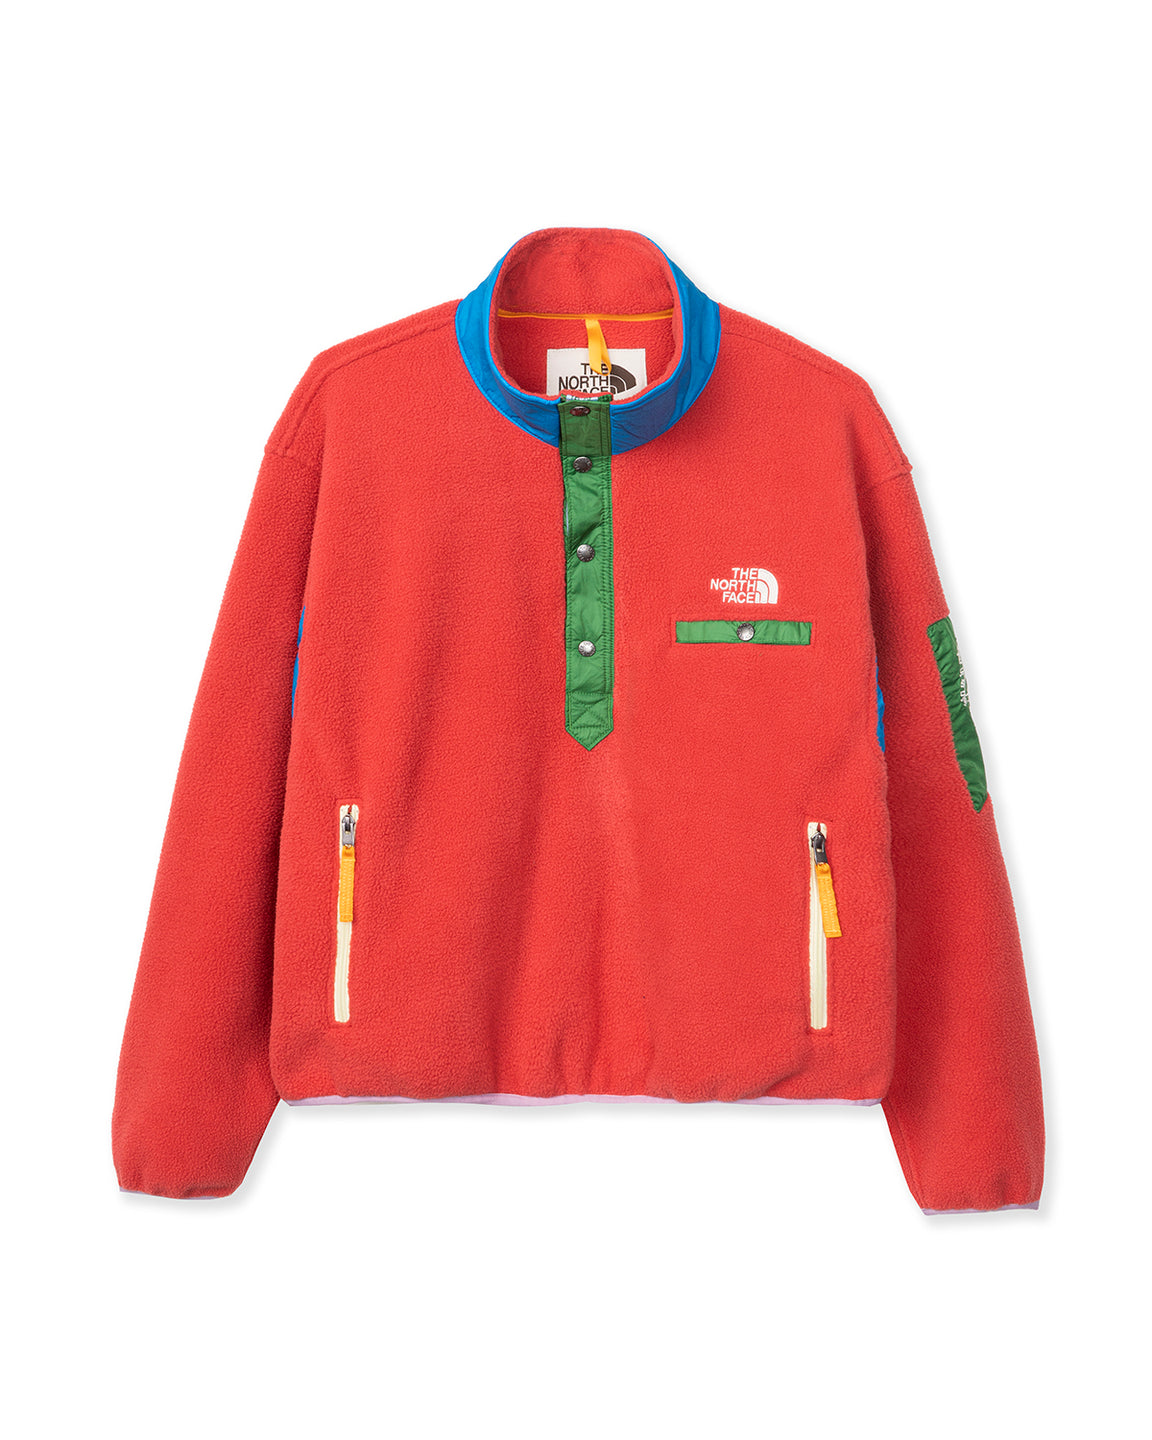 The North Face x Brain Dead 89 Placket Pullover Fleece - Sunbaked Red